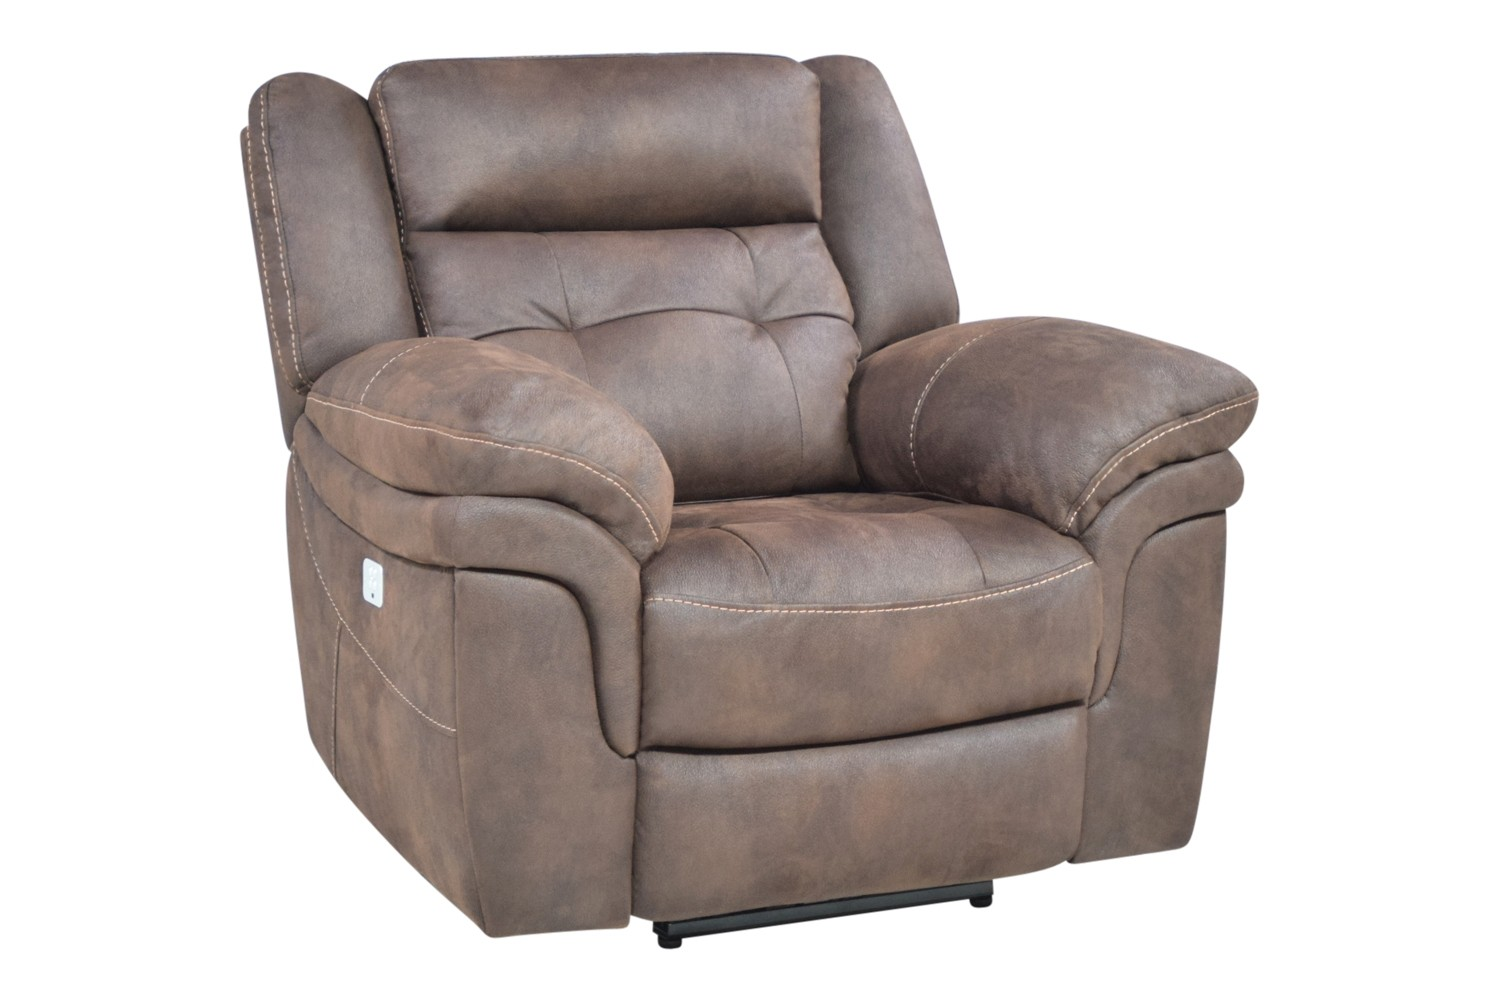 Double Wide Recliner Chair Recliners Mor Furniture For Less